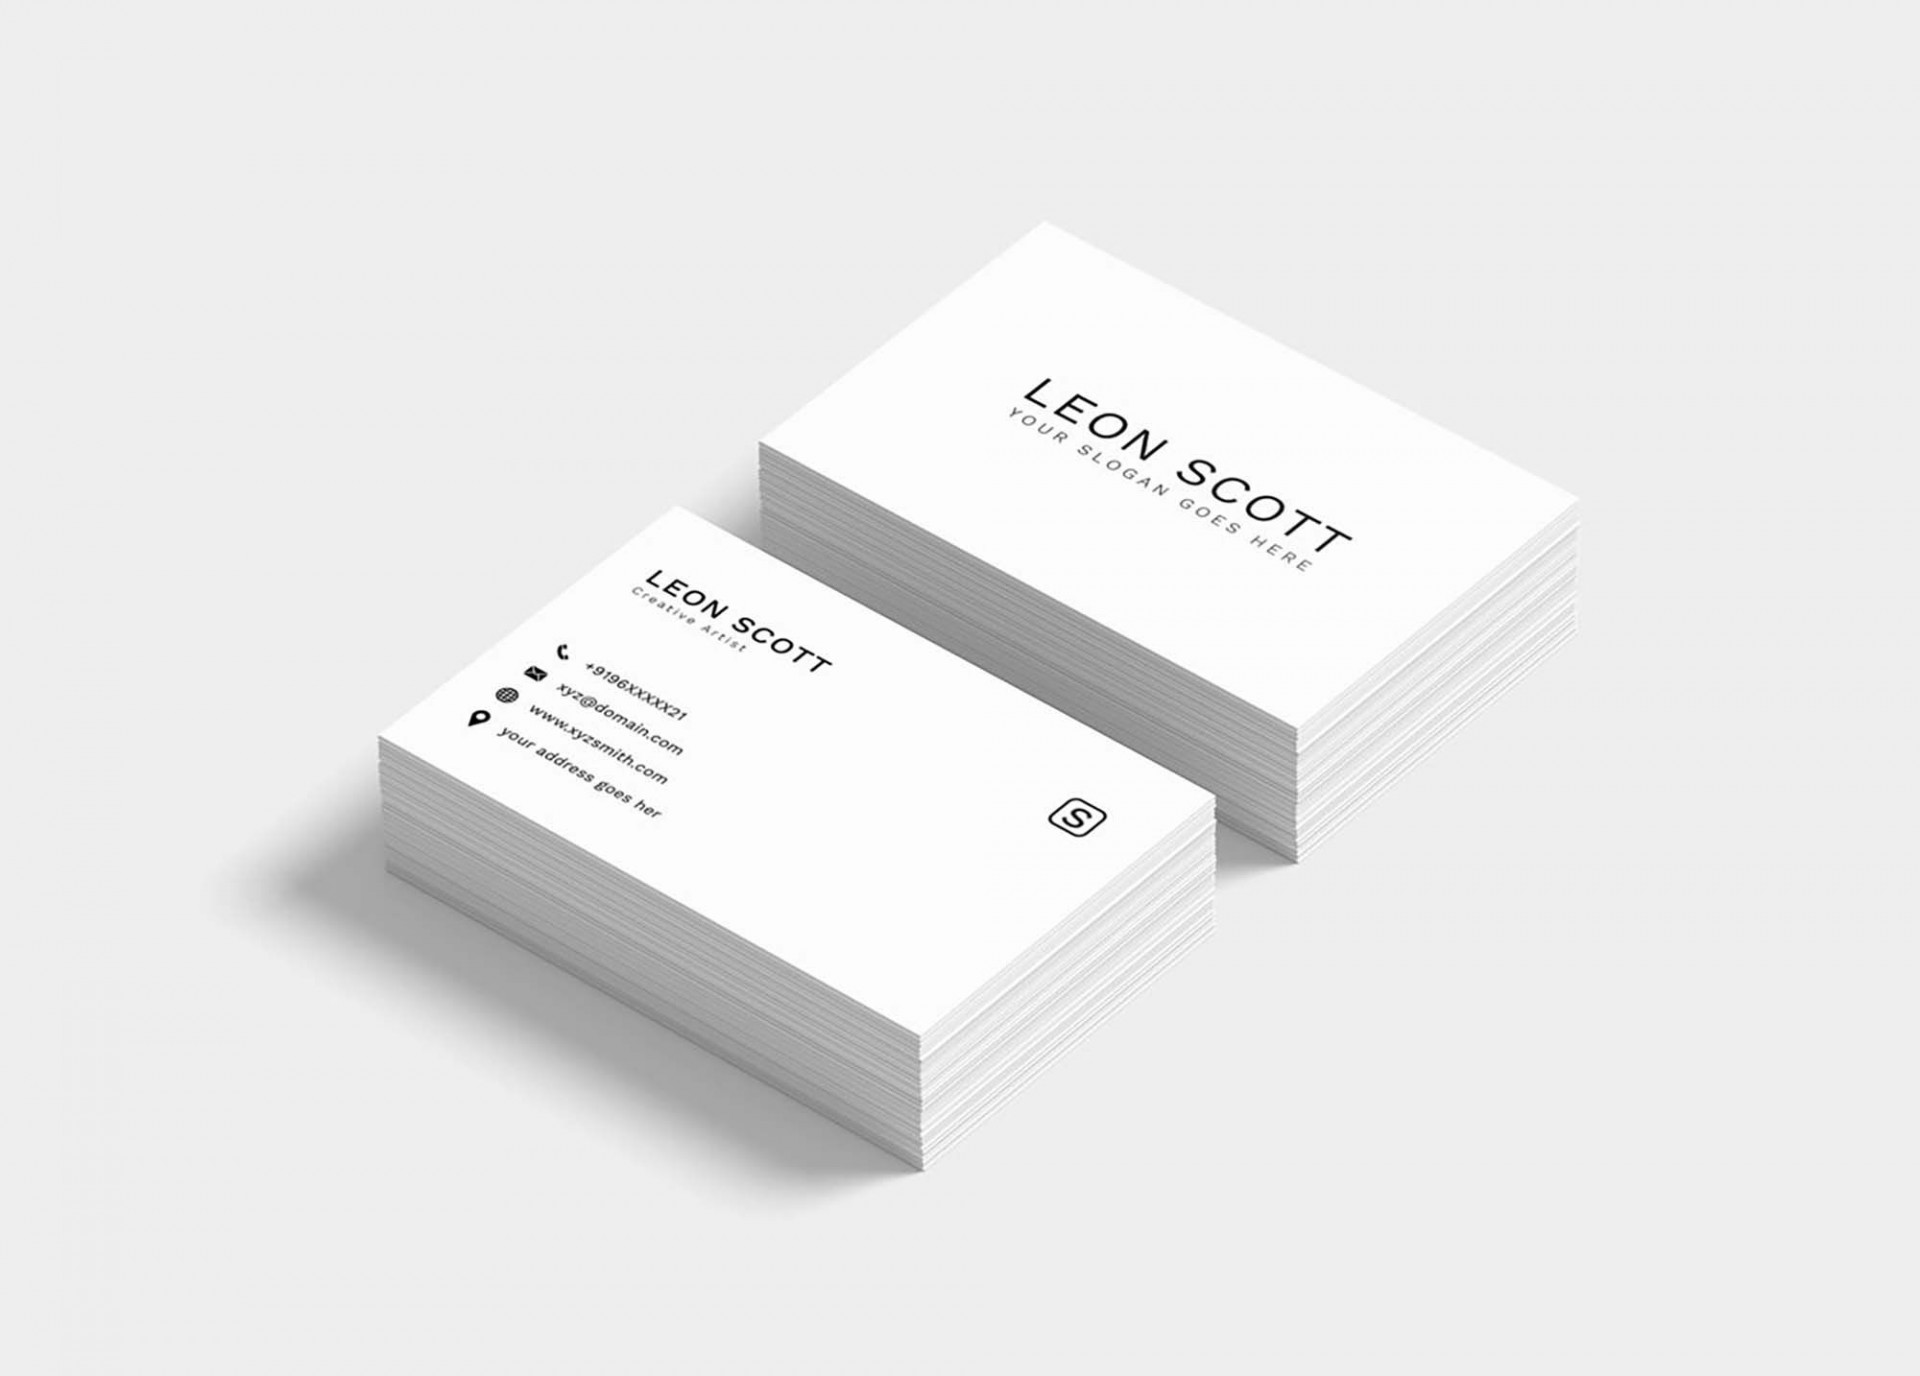 005 Imposing Minimal Busines Card Template Psd Inspiration  Simple Visiting Design In Photoshop File Free Download1920